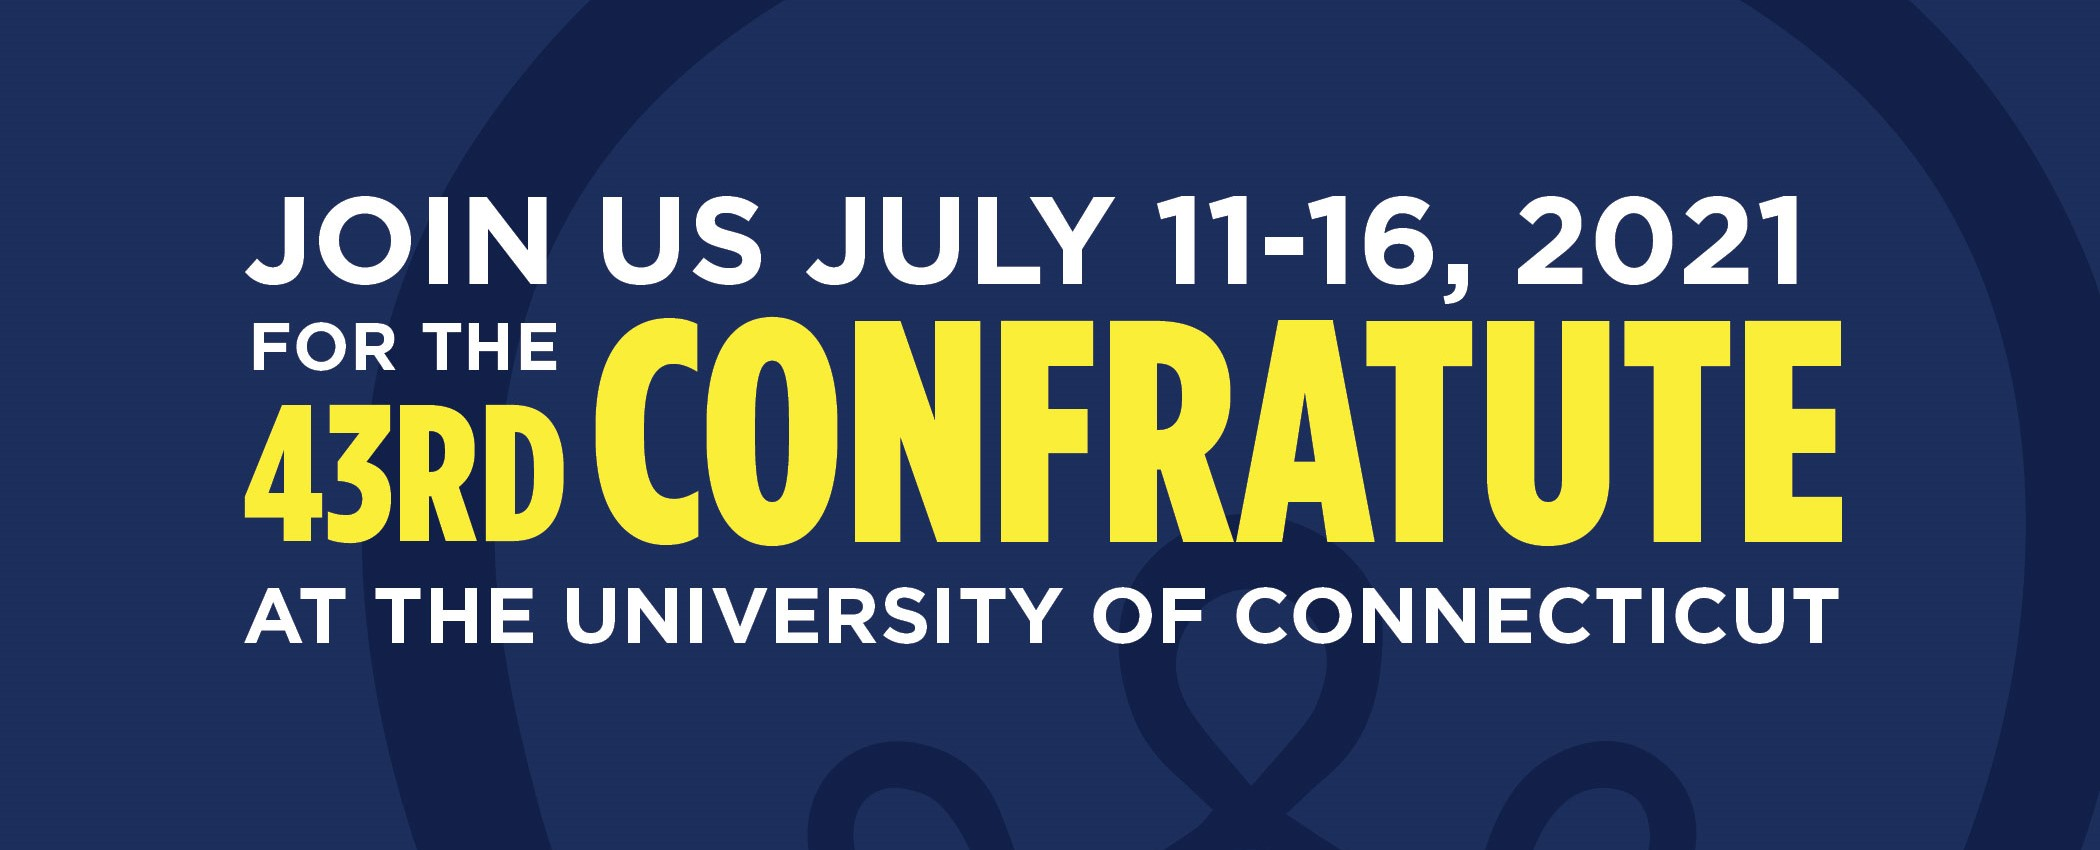 Join us July 11-16, 2021 for the 43rd Confratute at UConn